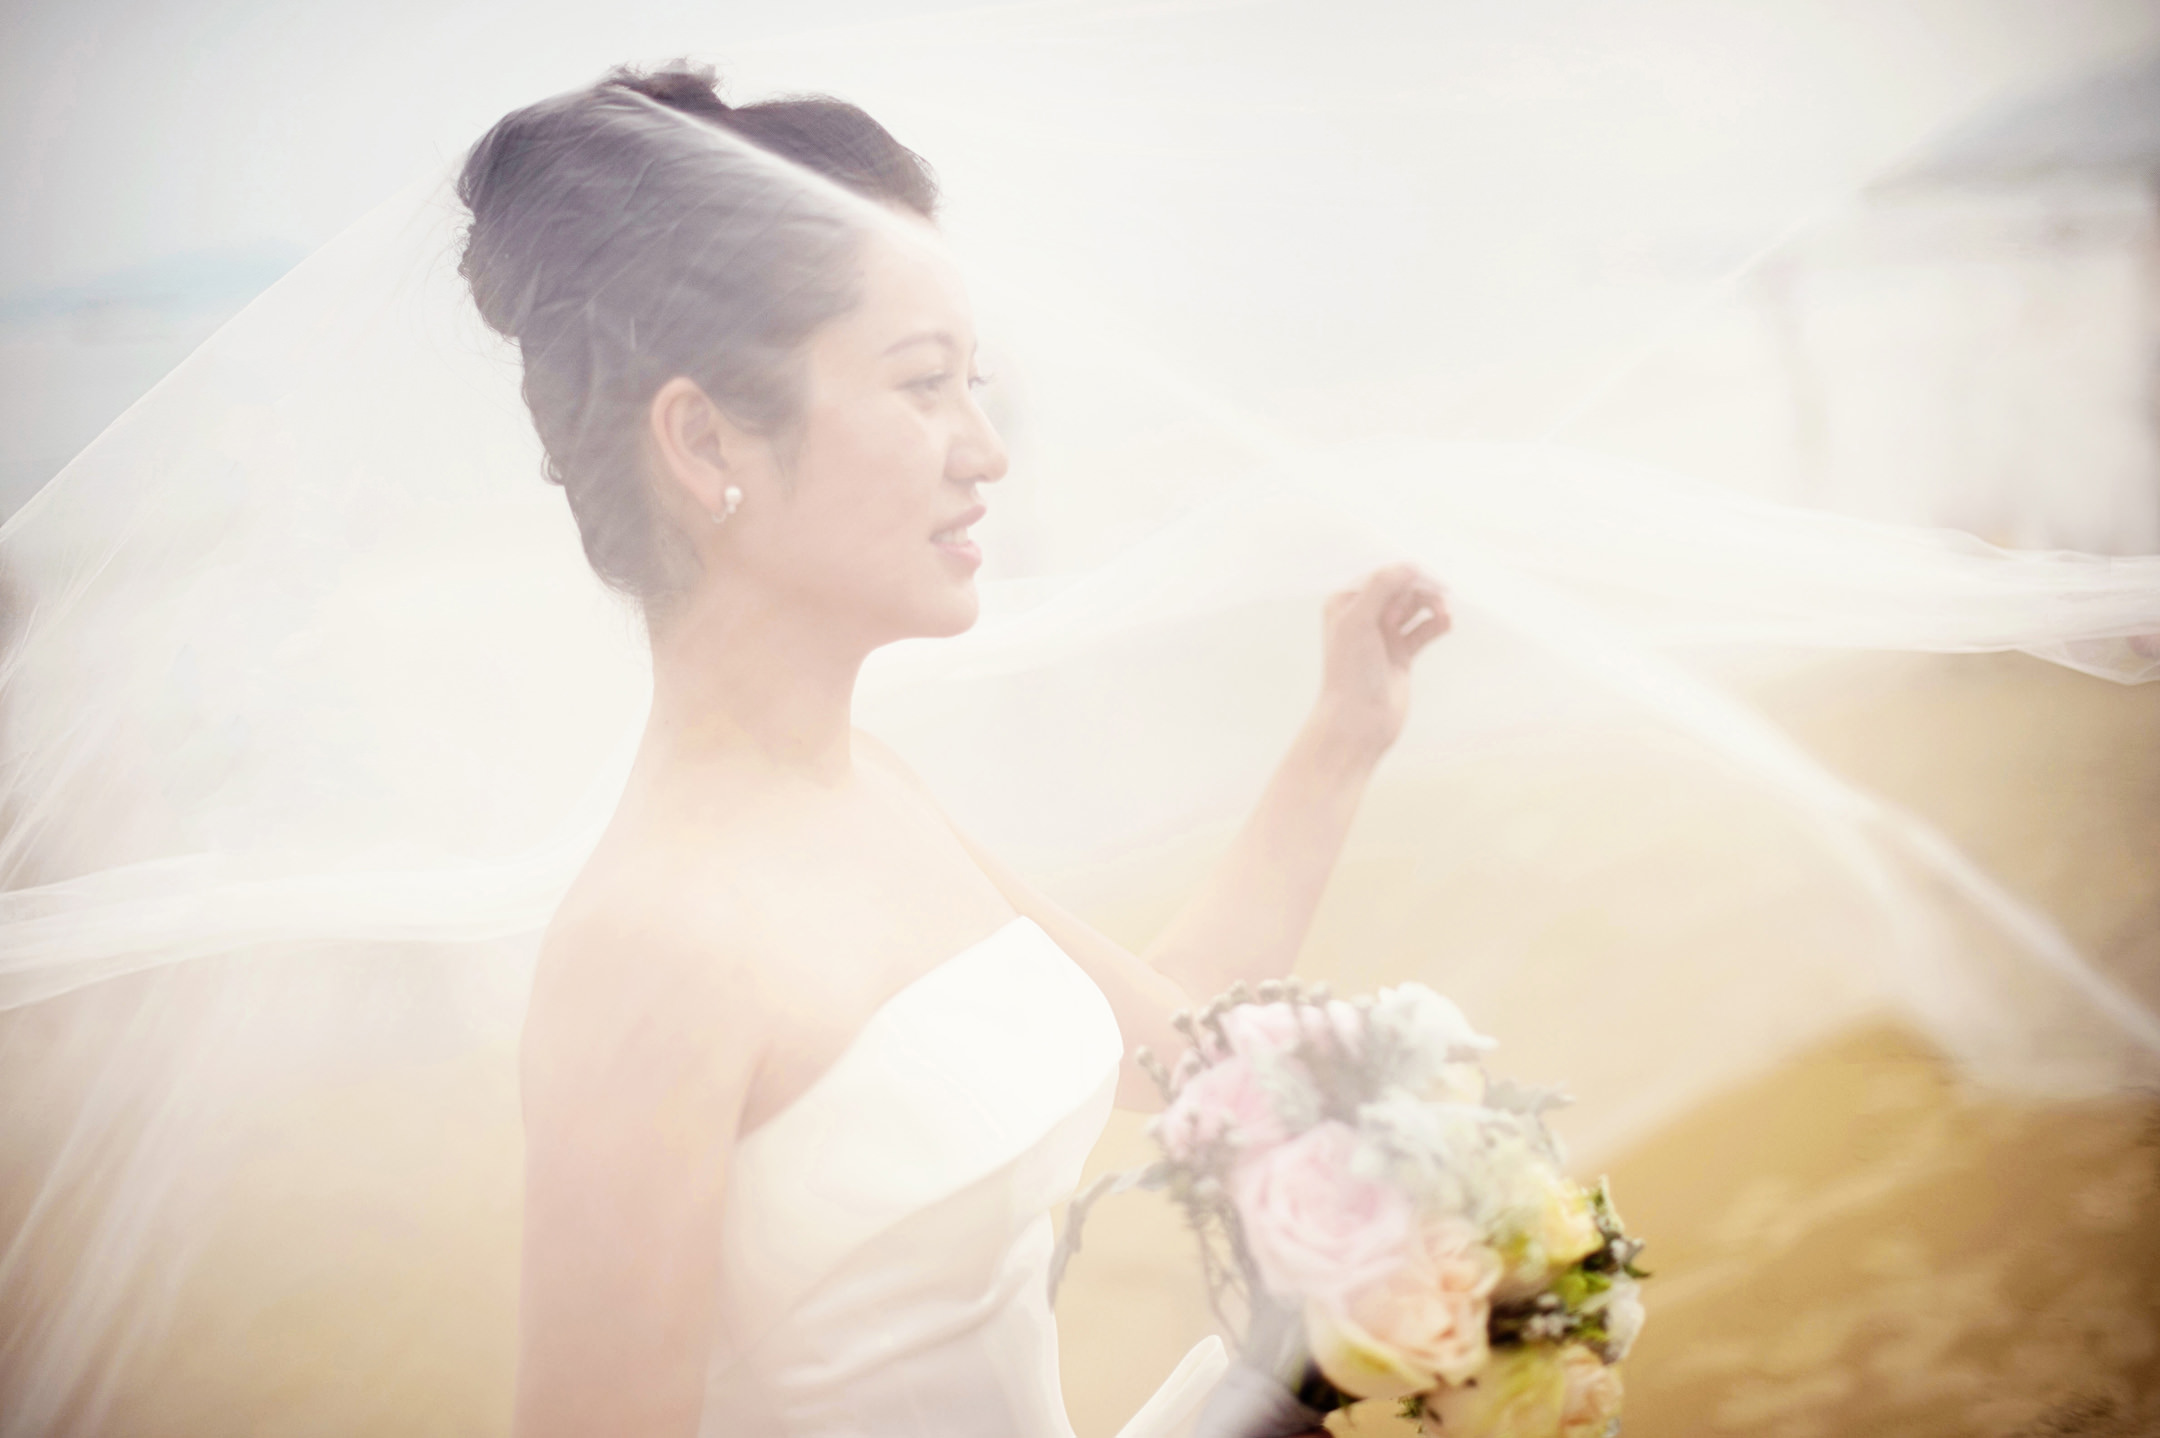 Chris_Hui_ShenZhen_DaMeiSha_Sheraton_Wedding_Photography262.jpg